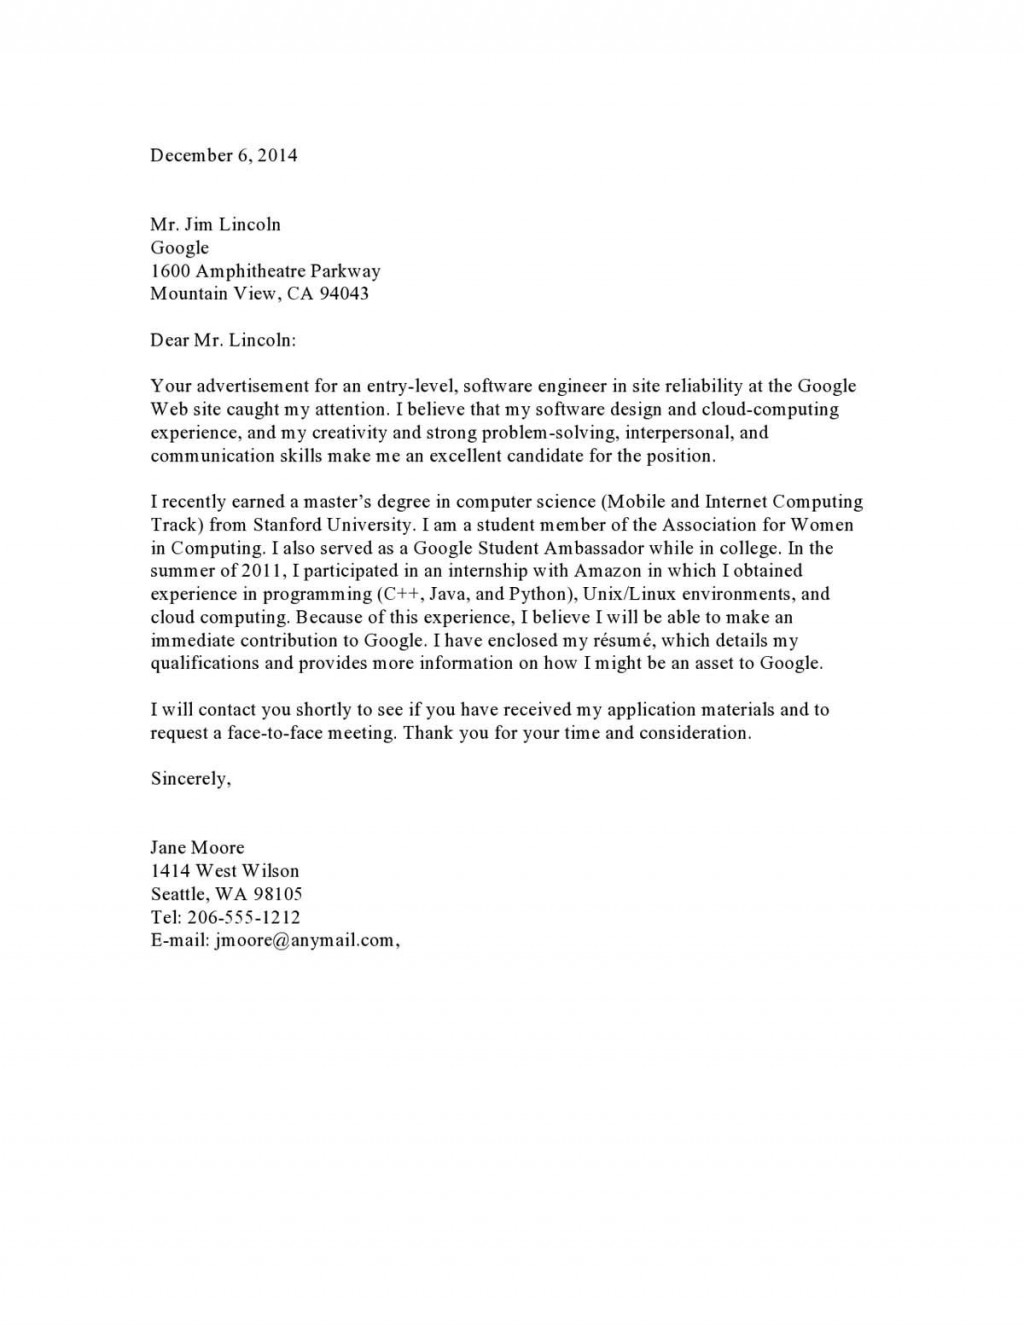 004 Fascinating Cover Letter For Internship Template Highest Quality  Free Engineering Example SummerLarge